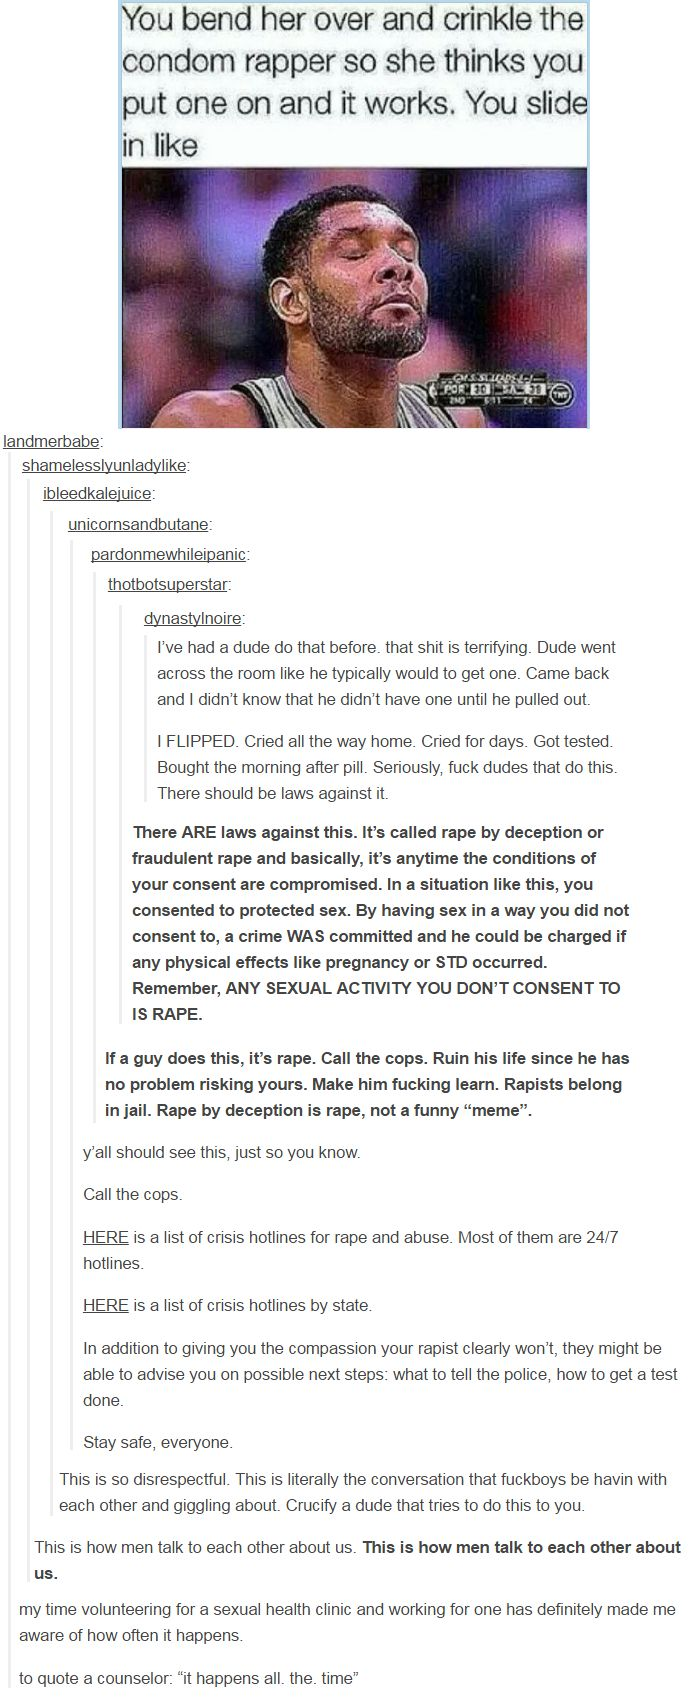 any man who thinks this is okay is a rapist. period. http://acetrackie.tumblr.com/post/140415254446/landmerbabe-quietstorm-thundathighs#notes